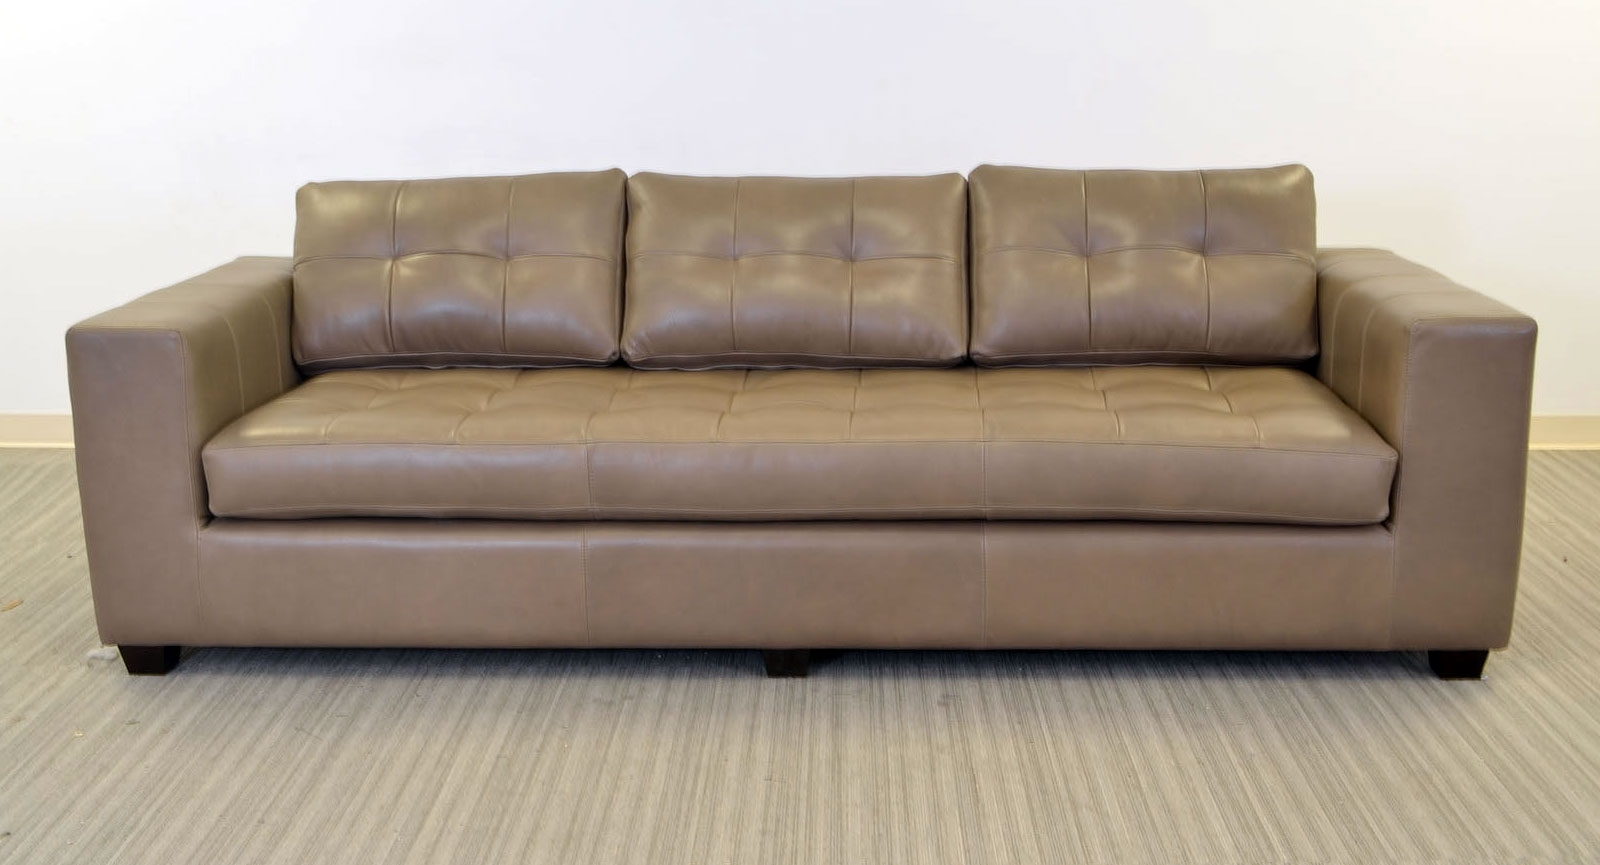 One Cushion Sofas Regarding Most Recent Gev Sofa ‹‹ The Leather Sofa Company (View 16 of 20)